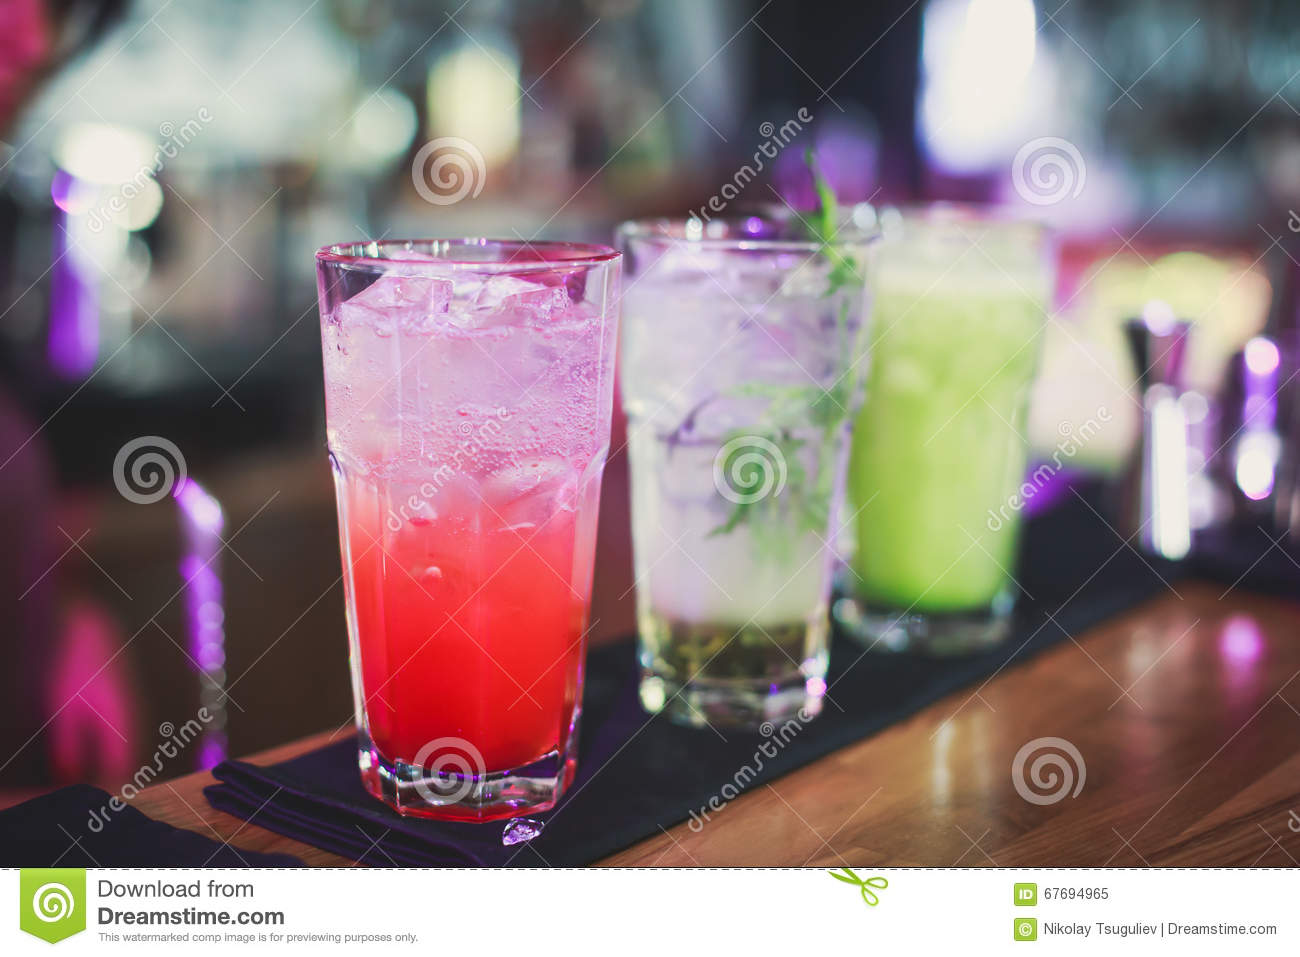 Beautiful line of different colored alcohol cocktails with smoke on a Christmas party, tequila, martini, vodka, and others on part